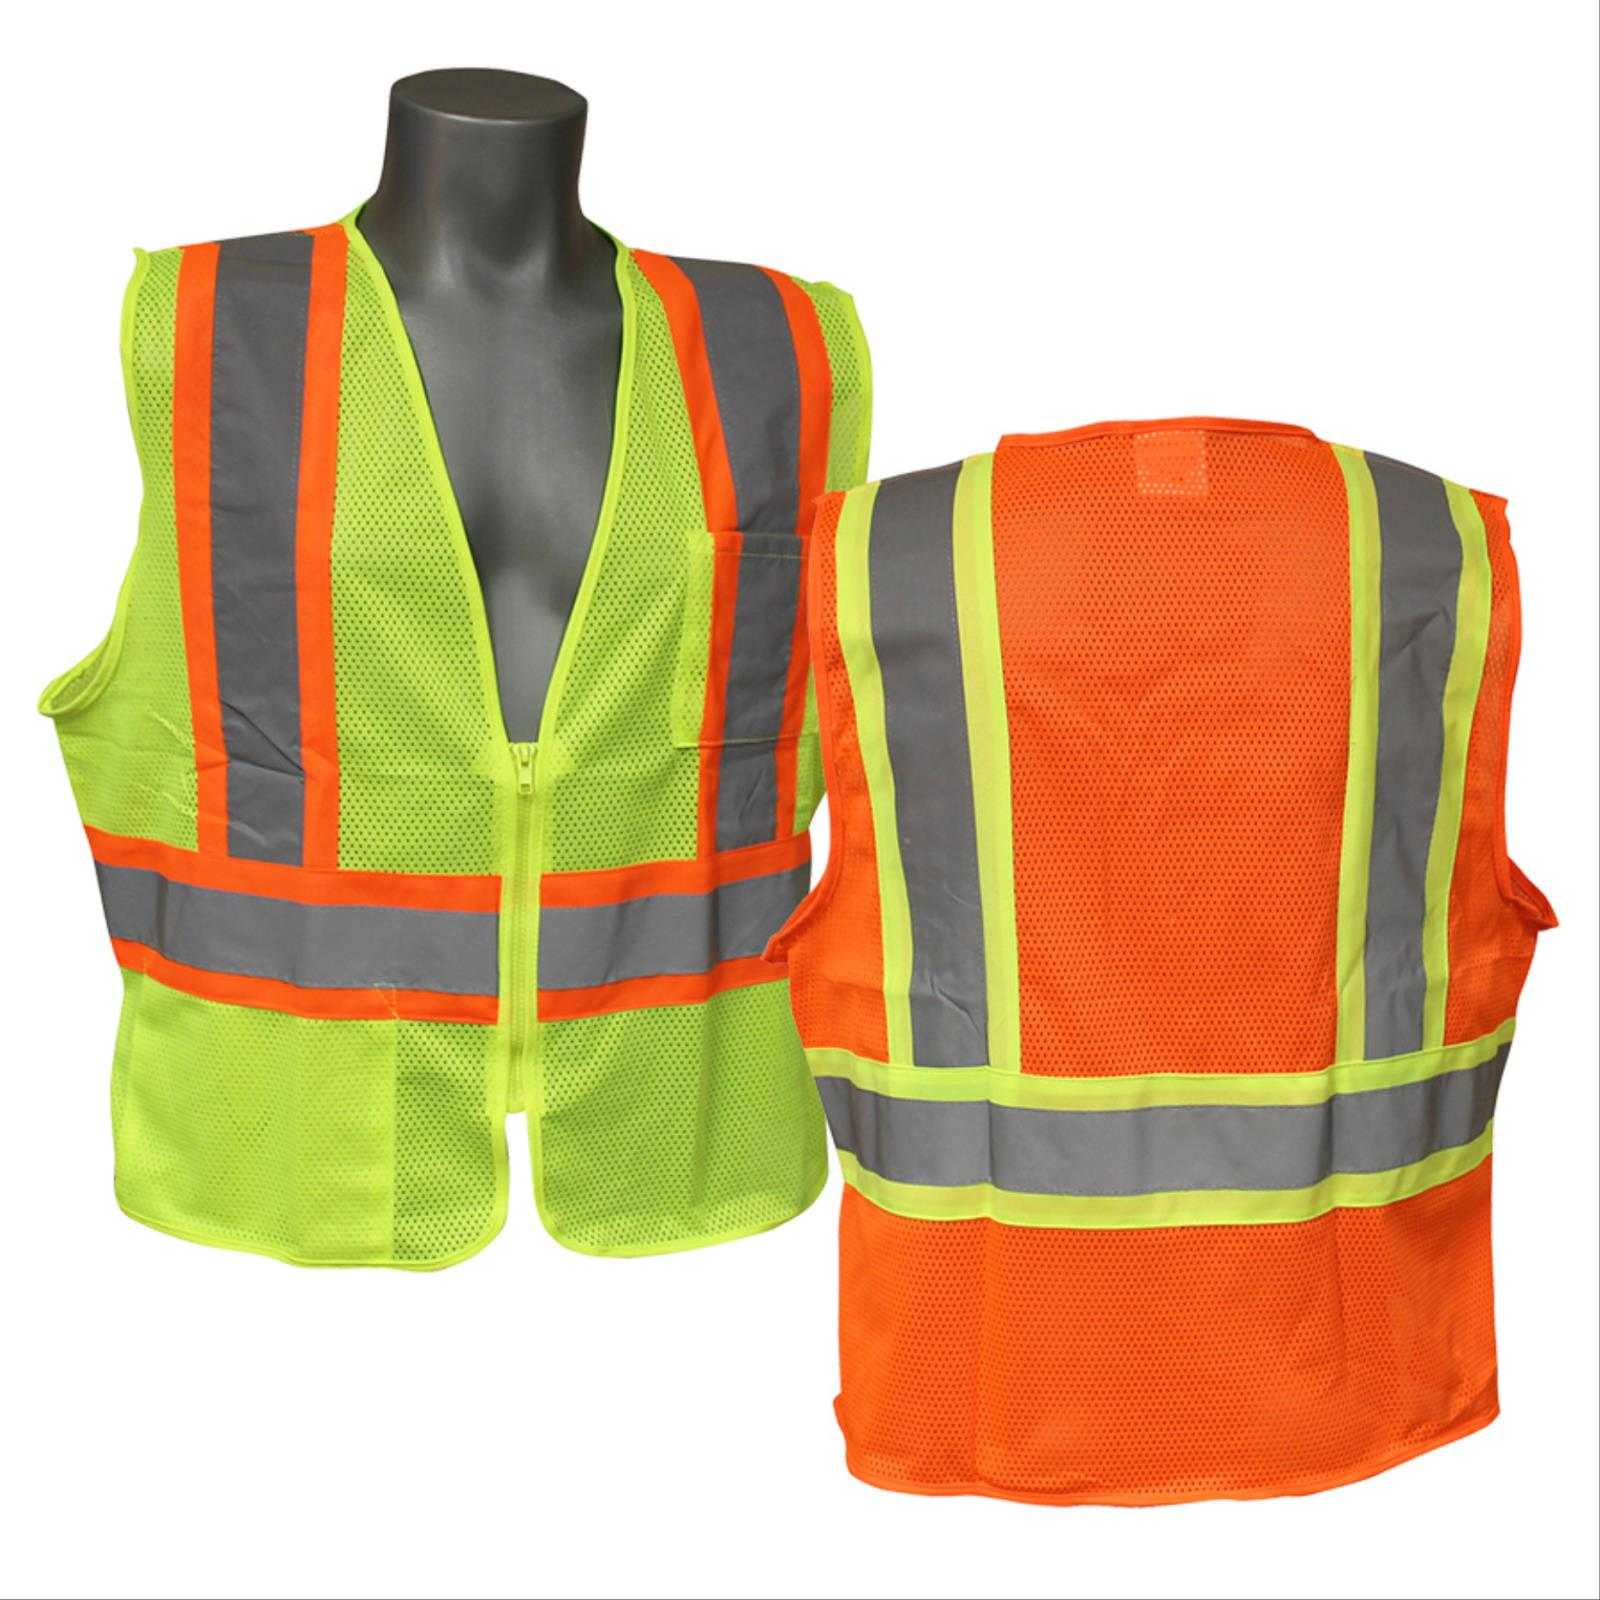 Two-Tone Safety Vest with Zipper, Class 2 Type R